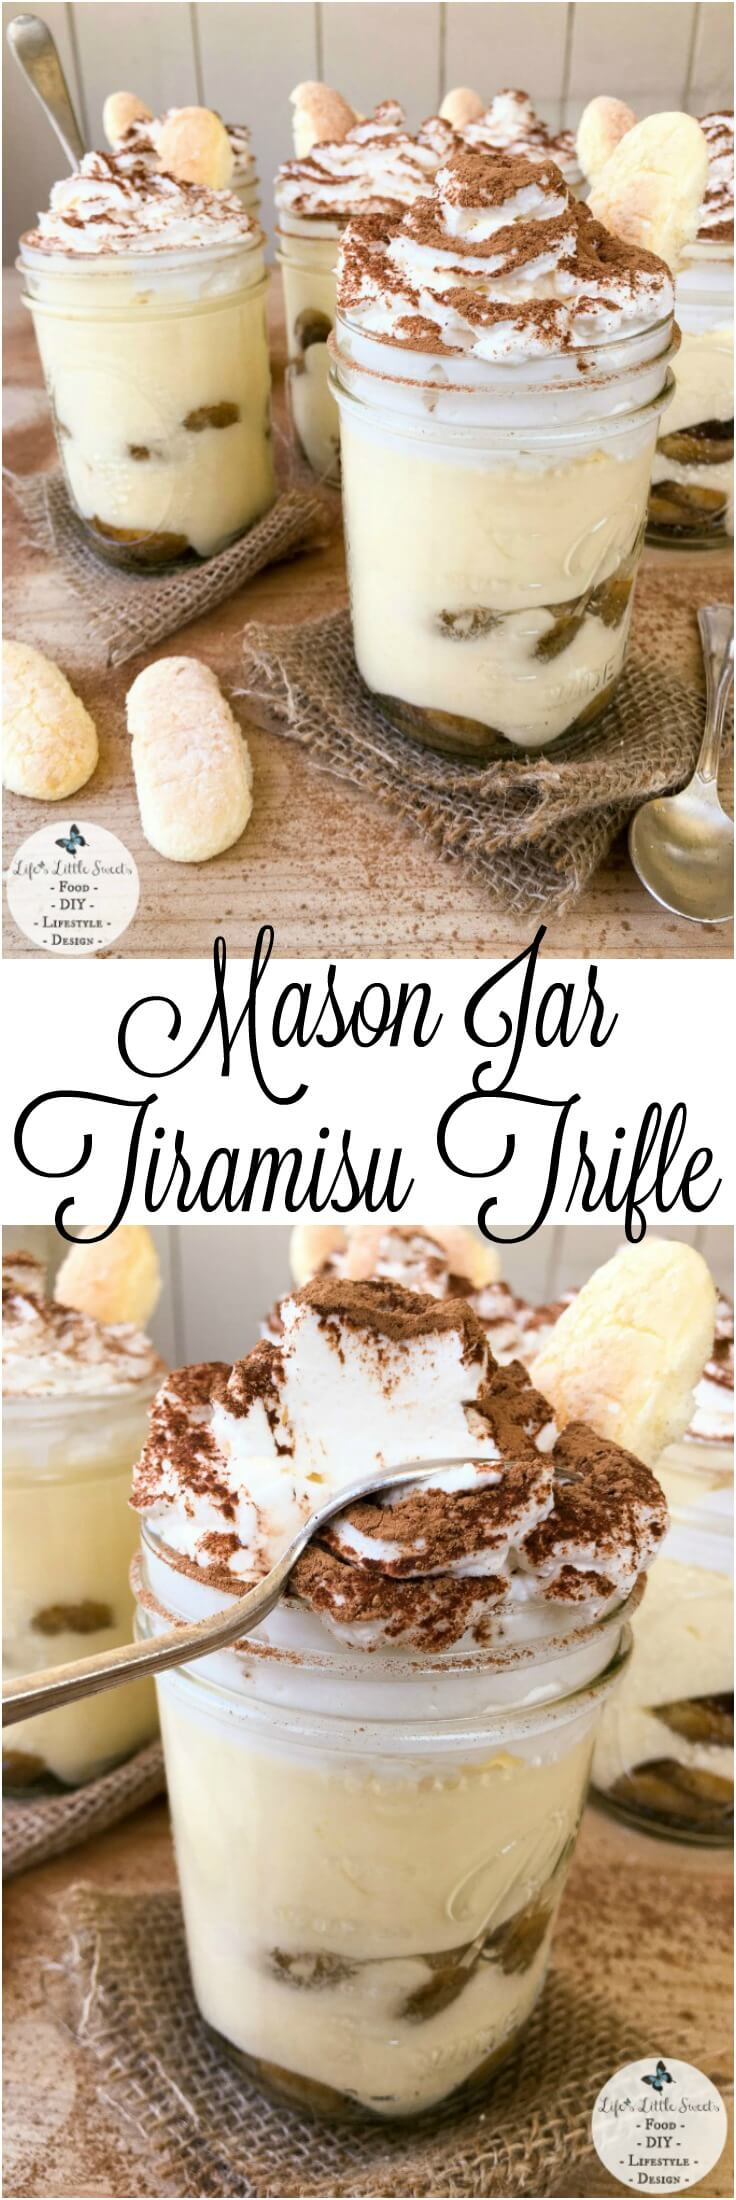 This Mason Jar Tiramisu Trifle is a new take the classic tiramisu dessert. There is plenty to go around as this recipe makes 6 pint-sized mason jars filled with delicious tiramisu dessert, yet only requires 10 ingredients. With 2 layers of delicious, espresso-soaked ladyfingers, rich tiramisu cream and lofty whipped cream dusted with cocoa, Mason Jar Tiramisu Trifle is going to be your new most-requested family favorite! #tiramisu #trifle #cocoa #ladyfingers #chocolate #coffee #dessert